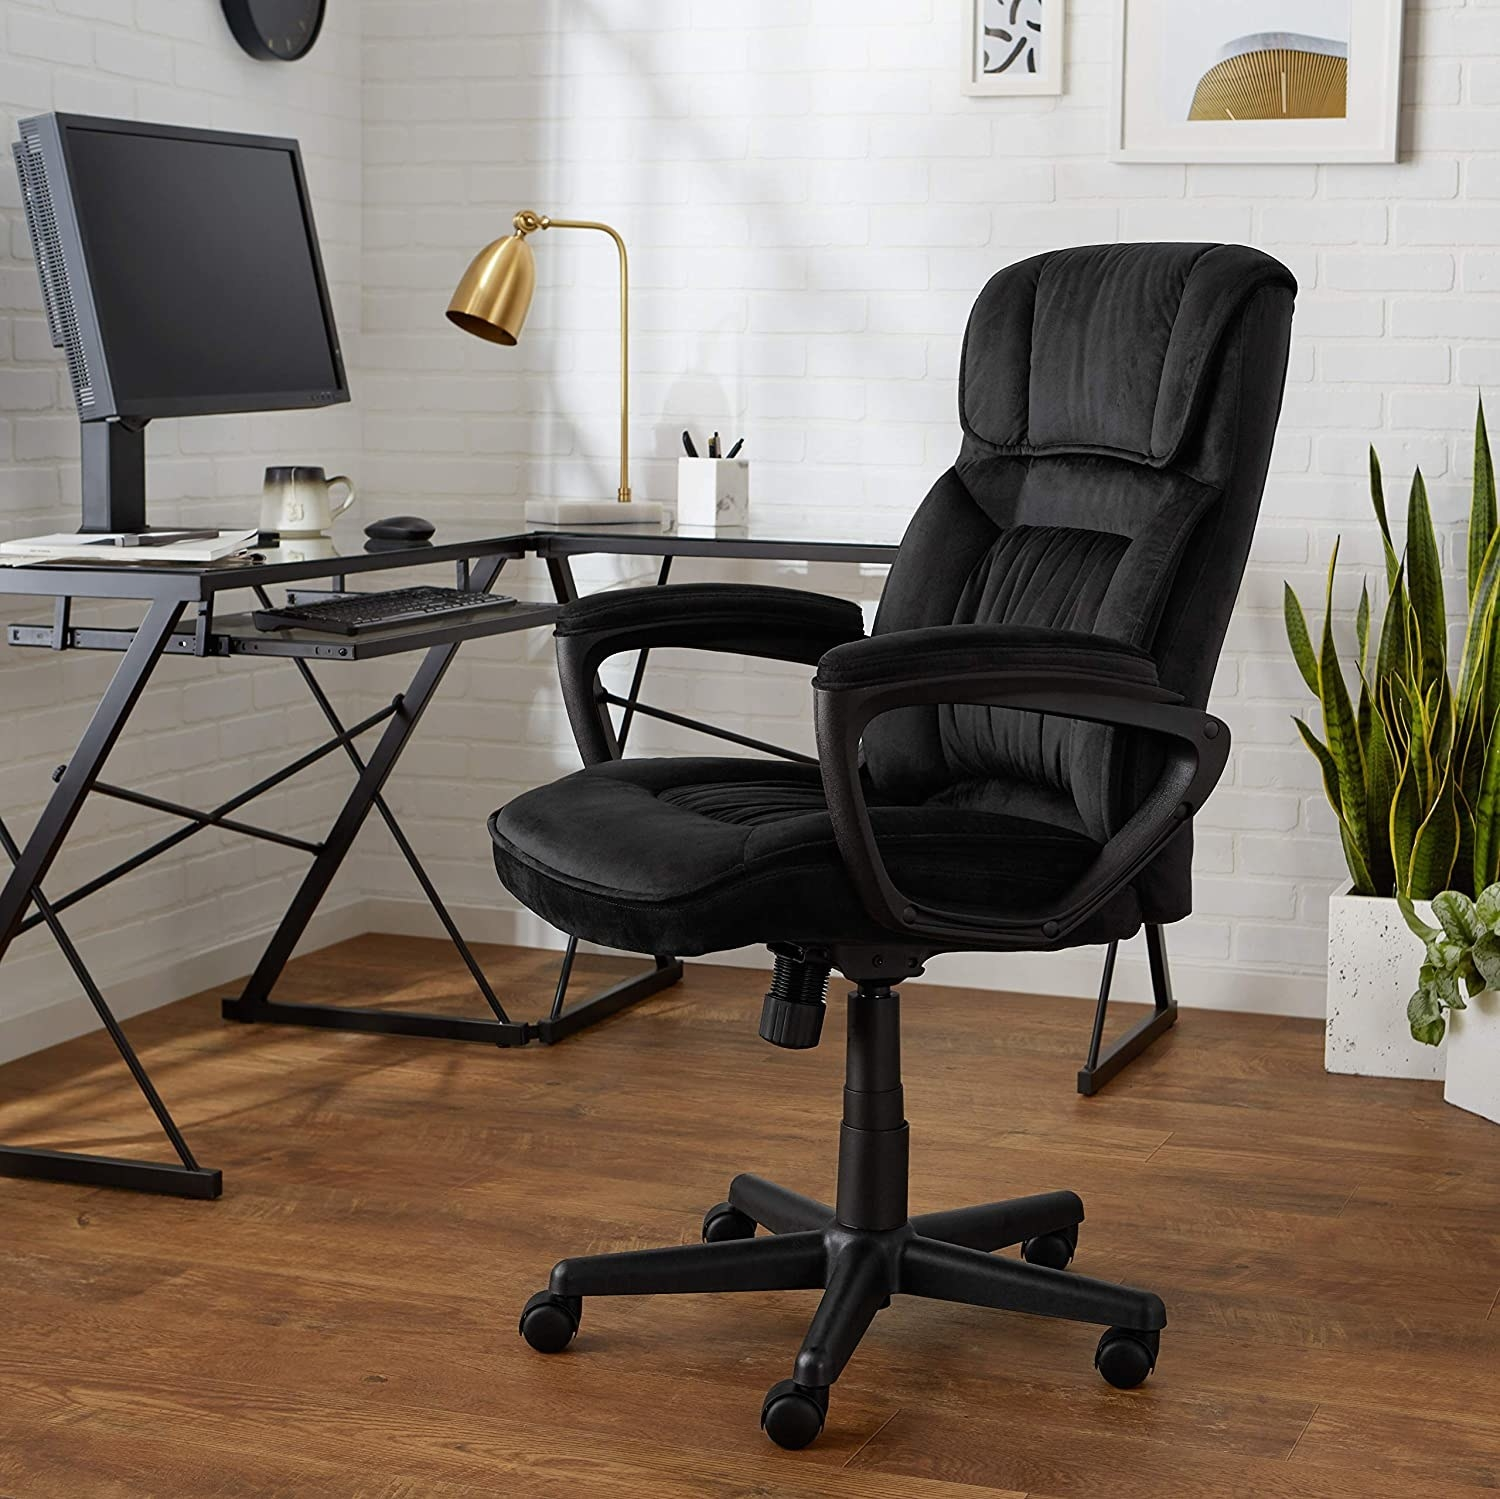 A large office chair with armrests sitting next to a desk